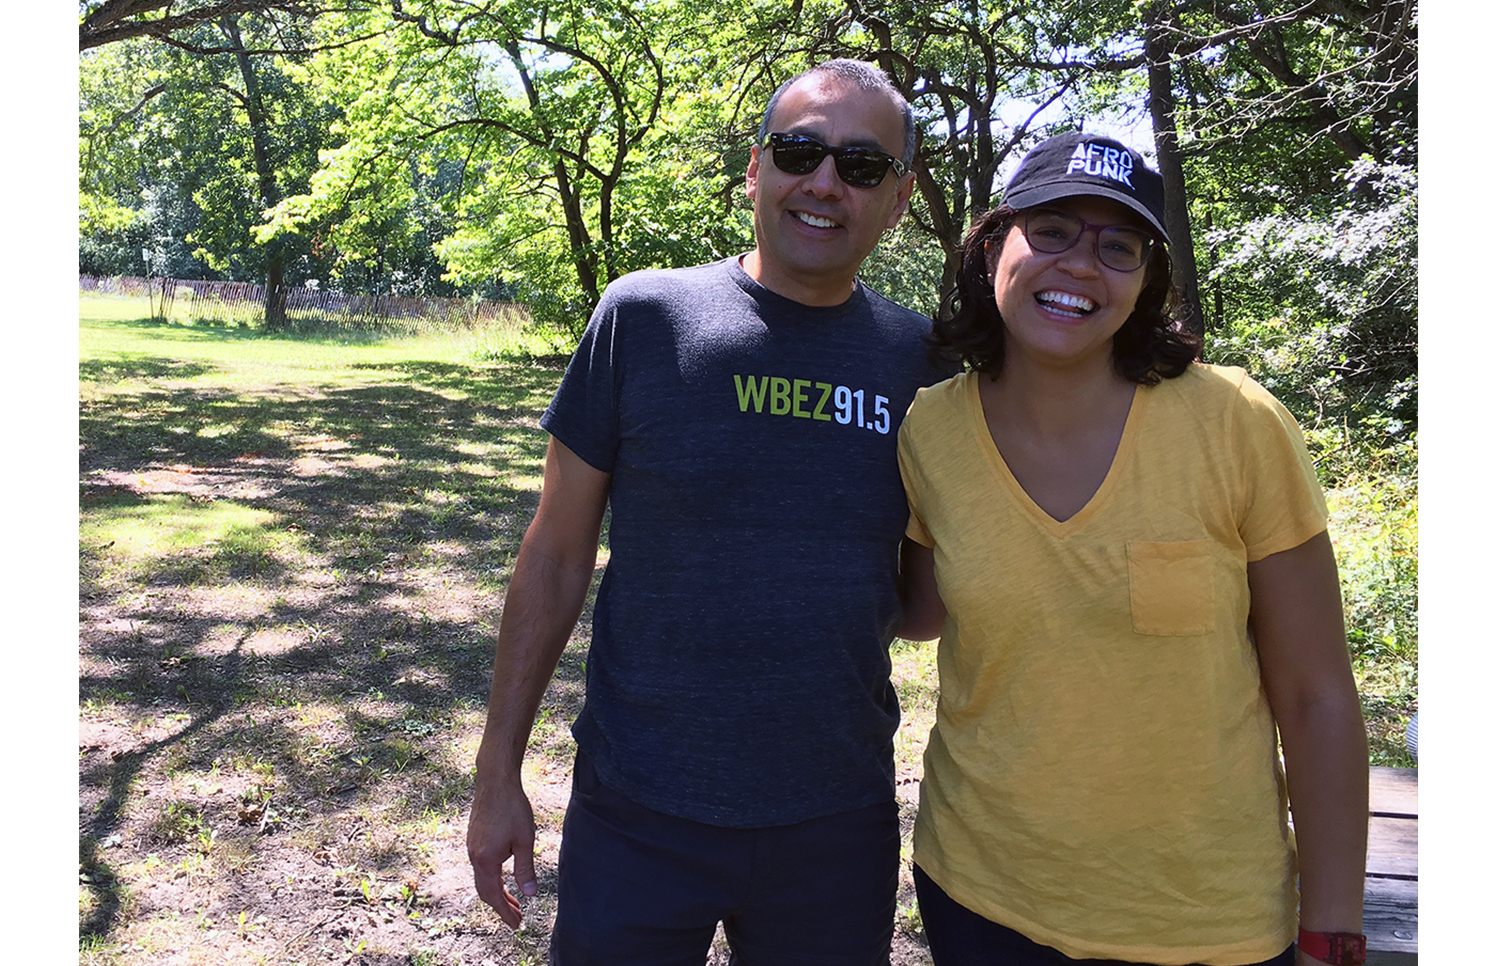 To learn more about the history of the Cook County Forest Preserves, questioner Arnulfo Delgado (left) took a walk through the Deer Grove Forest Preserve with anthropologist Natalie Bump Vena (right). (WBEZ/Jake Smith)